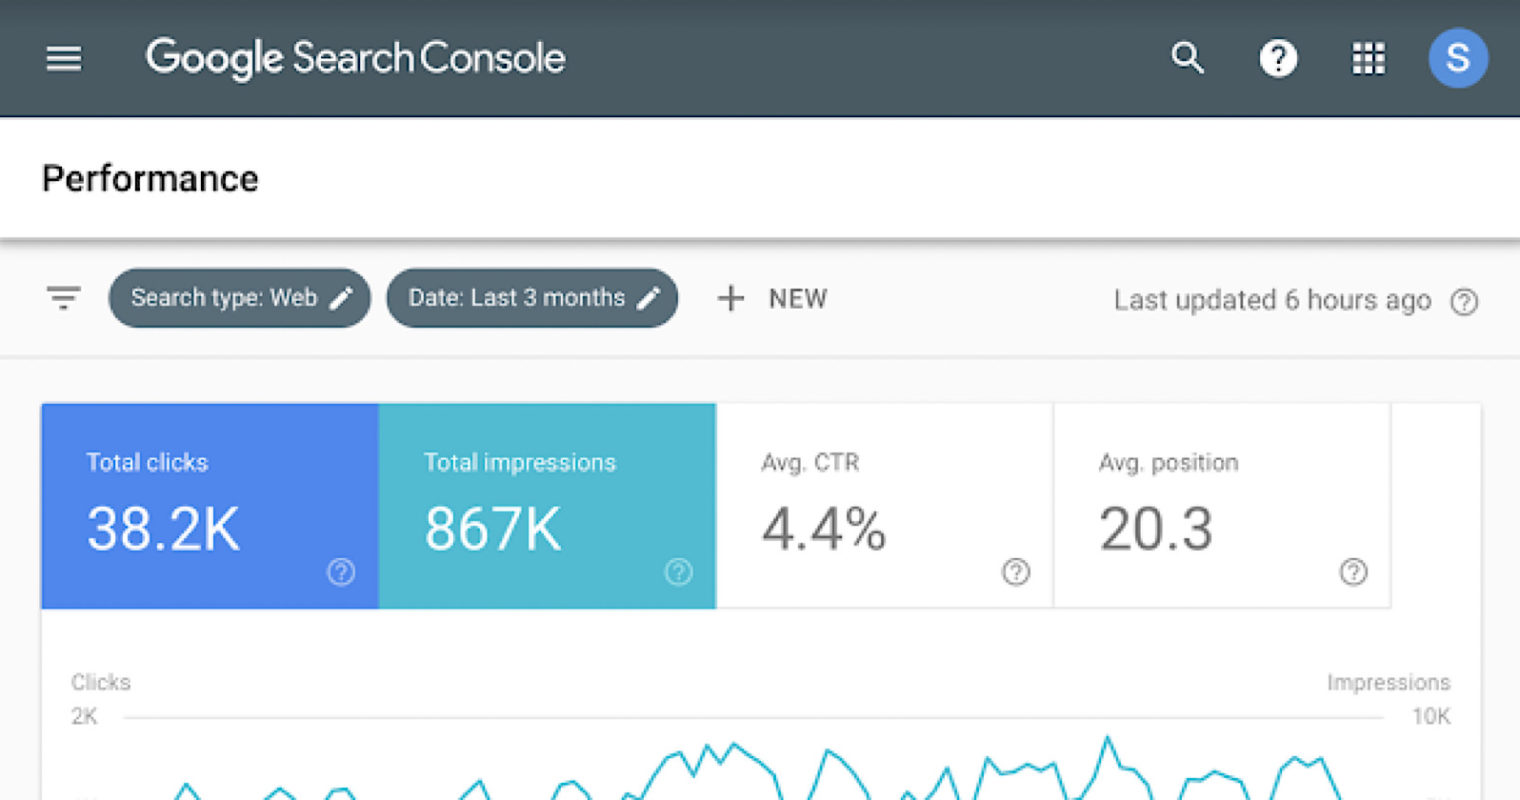 Google Search Console to Report on Data Related to Product Rich Results